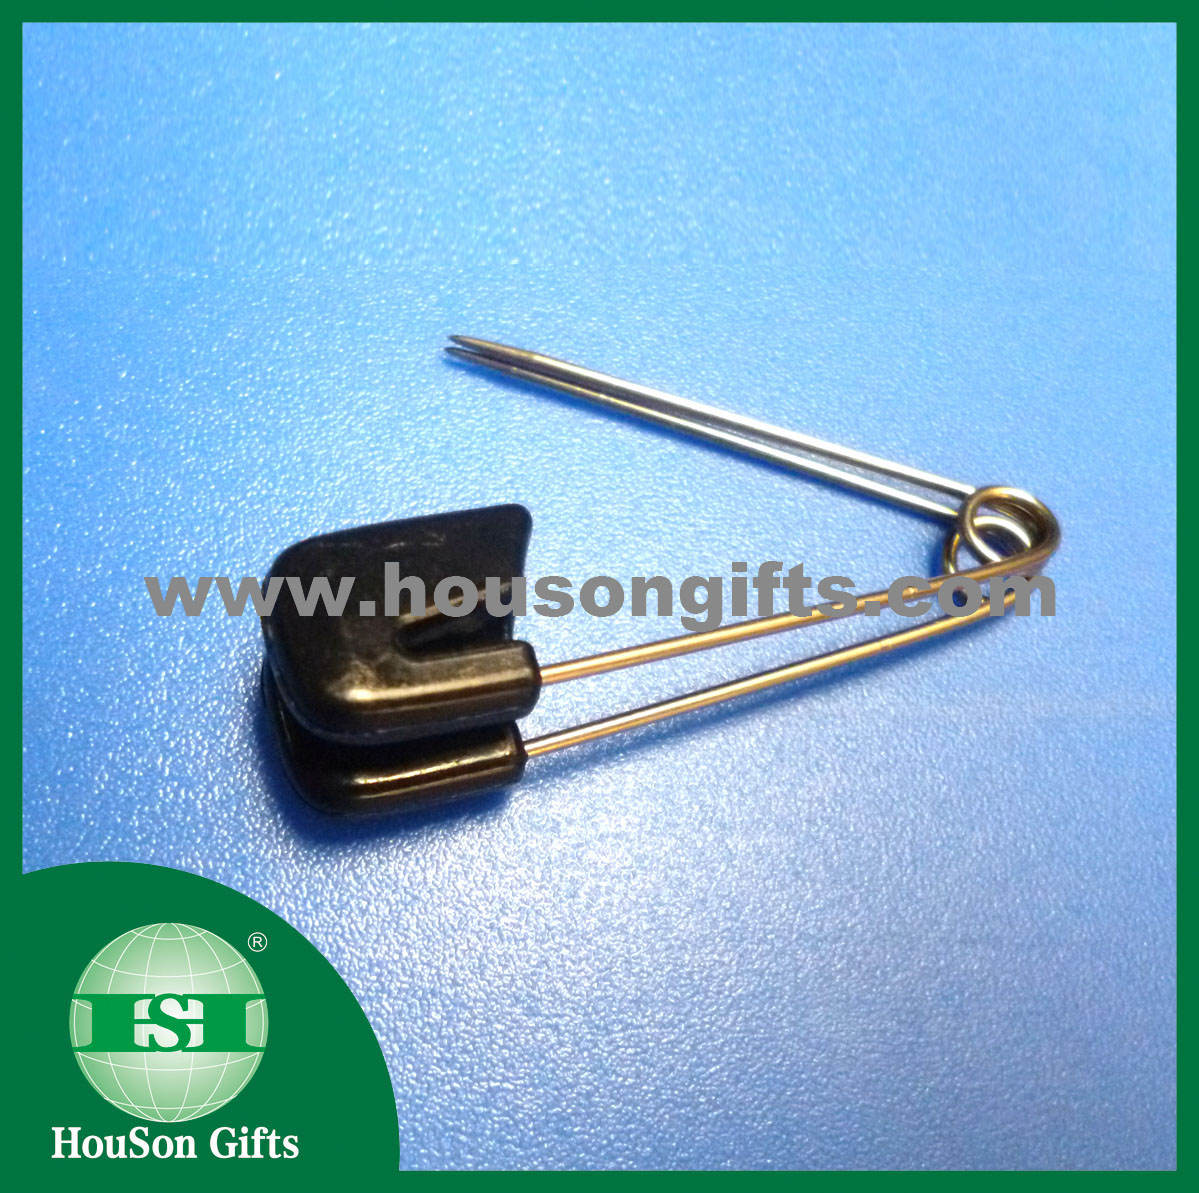 Brass safety pin